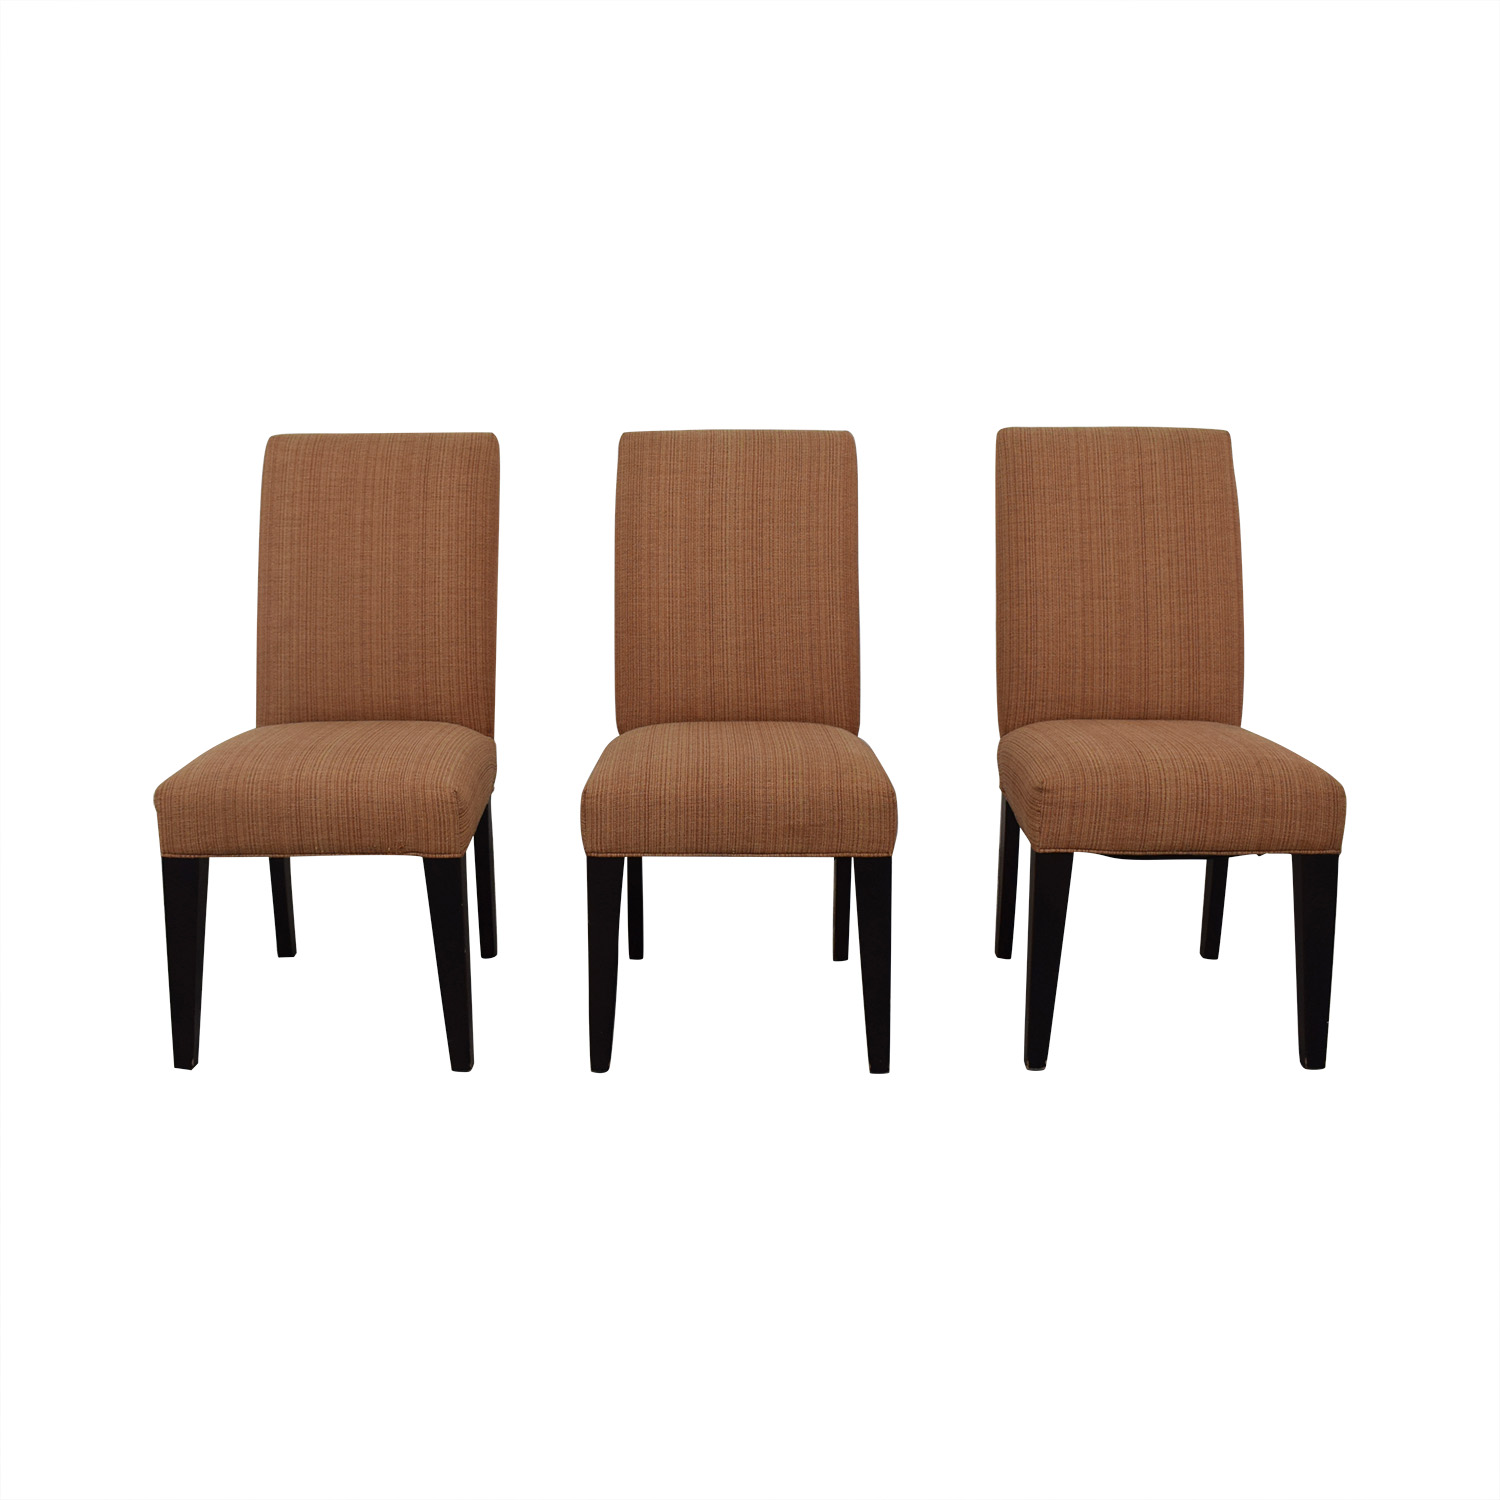 Mitchell Gold + Bob Williams Mitchell Gold + Bob Williams Anthony Side Chairs dimensions